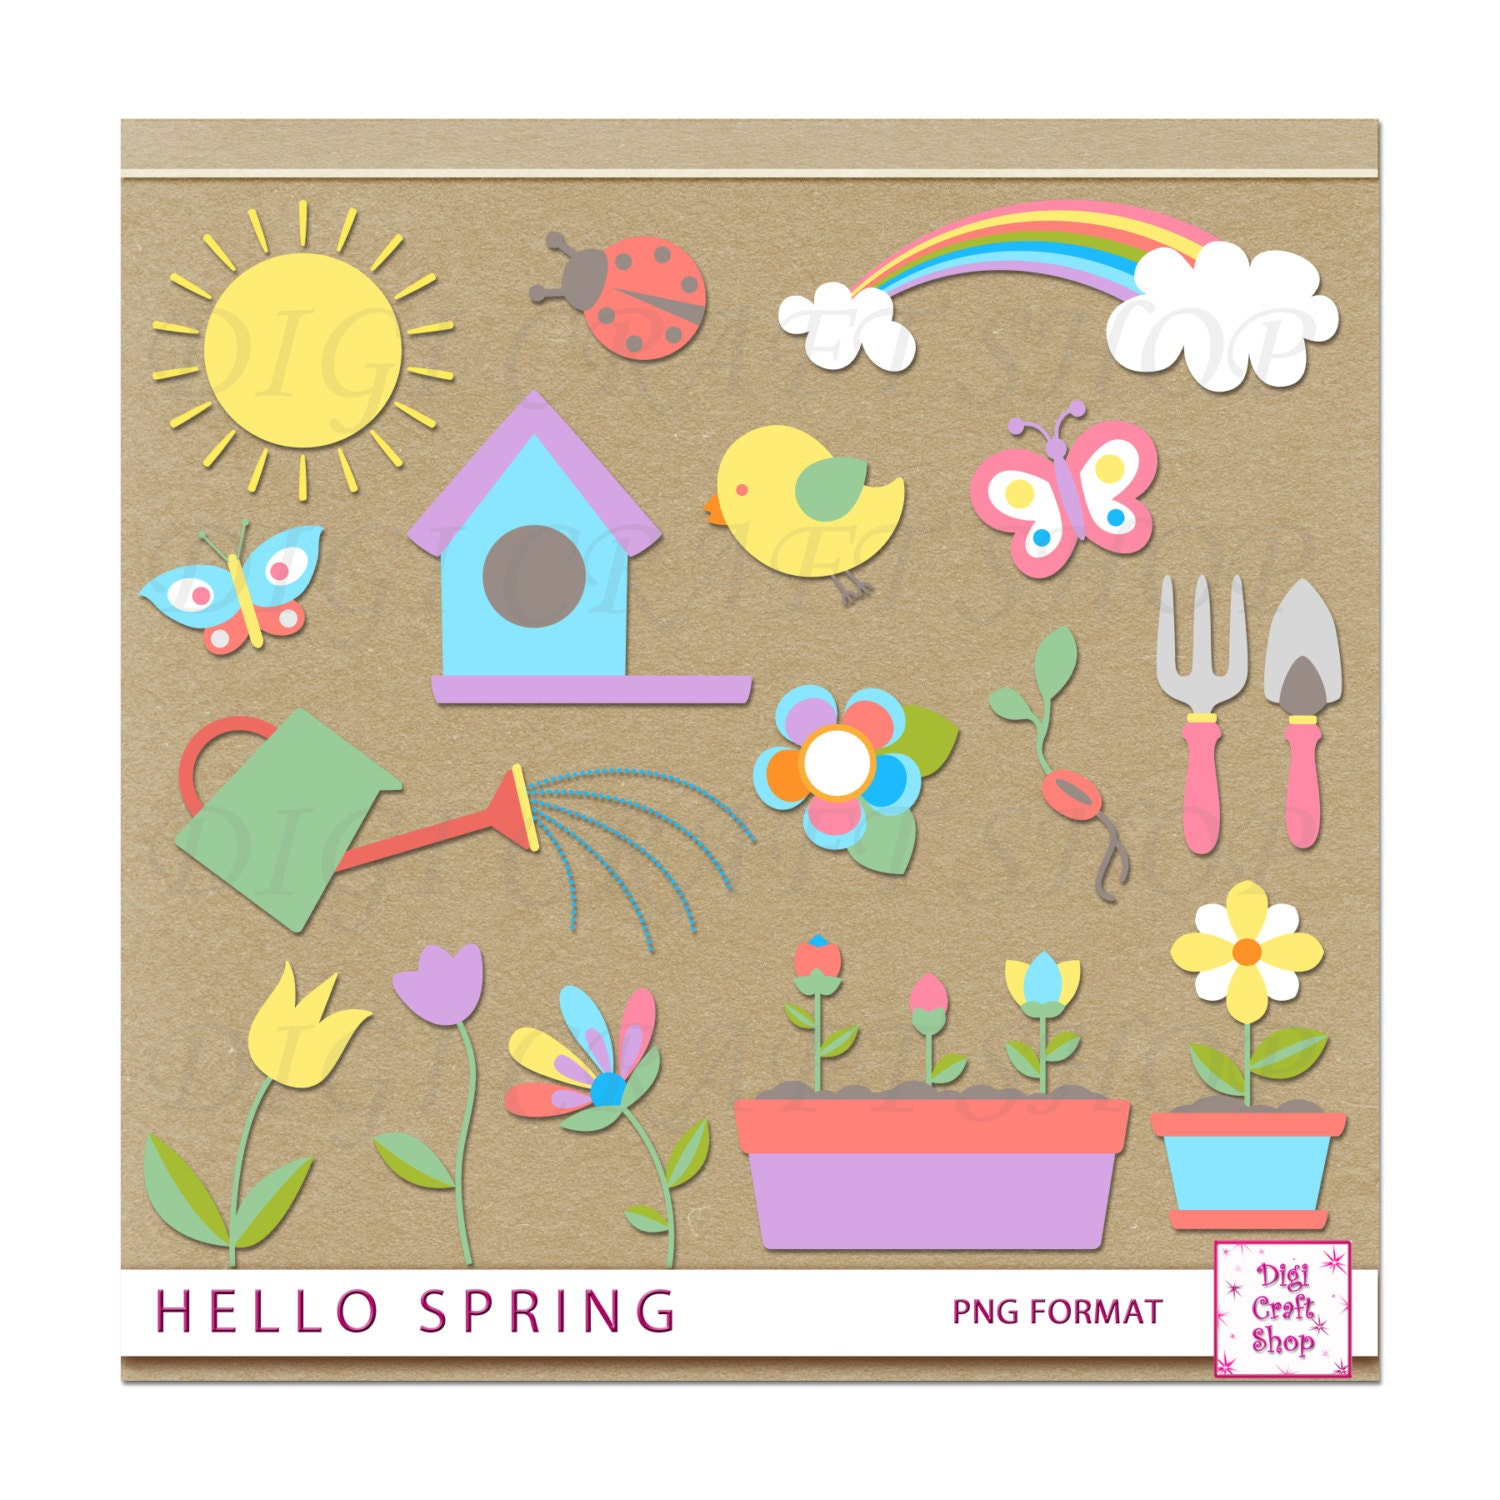 Digital hello spring clipart sun bird house rainbow watering can butterflies ladybug - Ladybug watering can ...